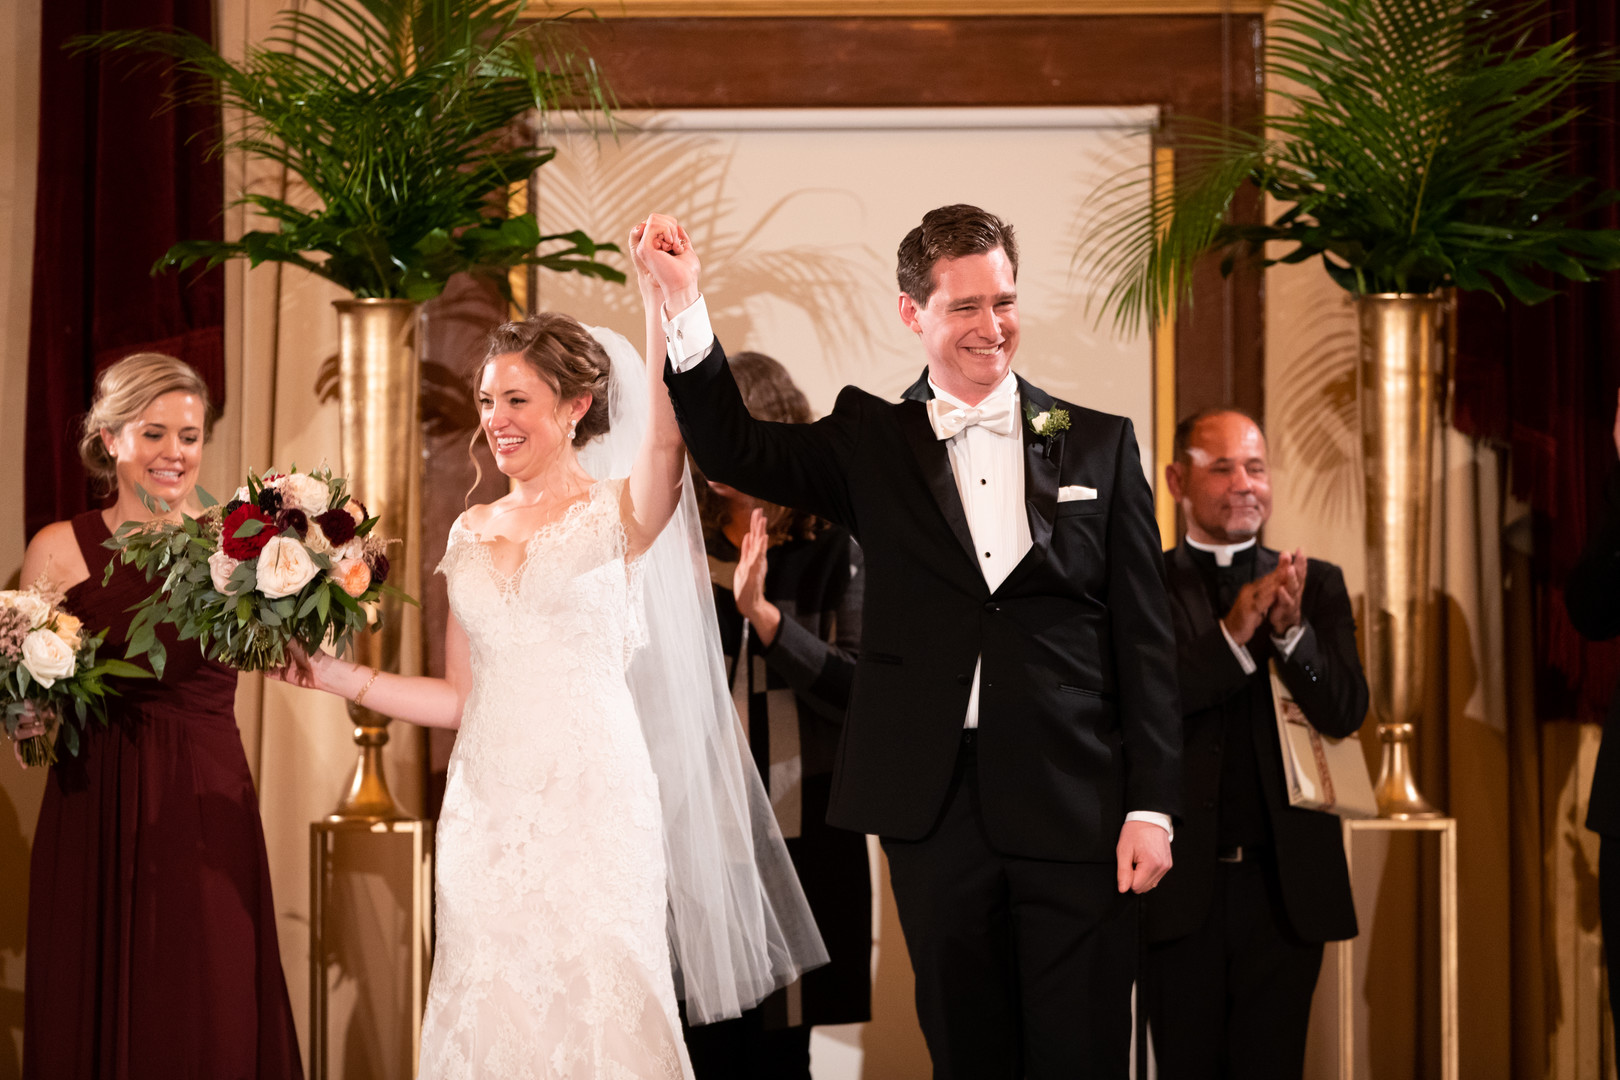 School of the Art Institute downtown Chicago wedding inspiration captured by Candice C. Cusic Photography and planned by Clementine Custom Events. See more Chicago wedding ideas at CHItheeWED.com!